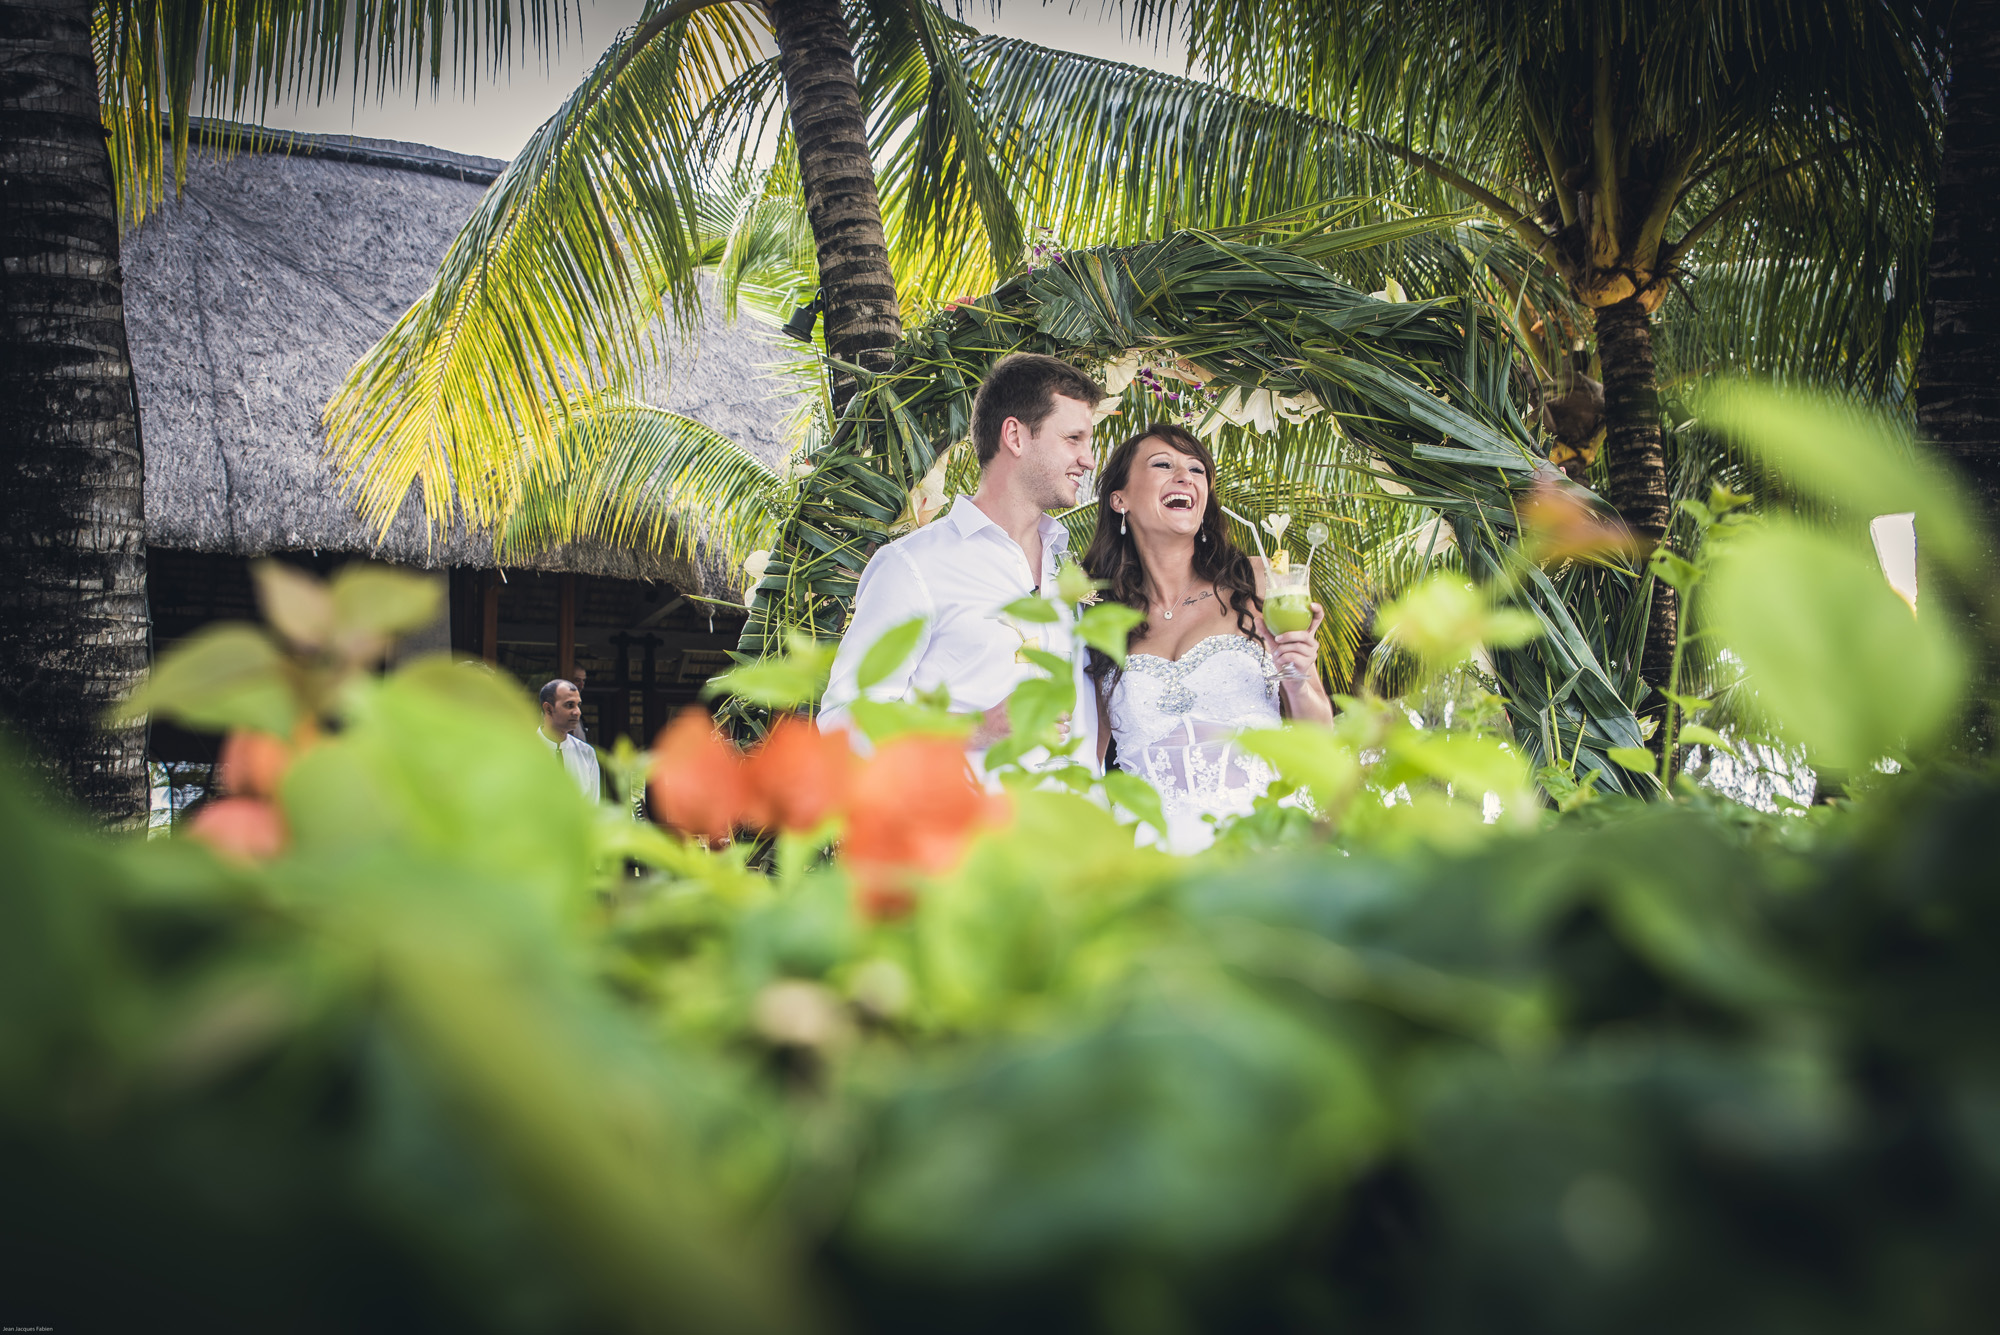 Justyna and Michael-112.jpg